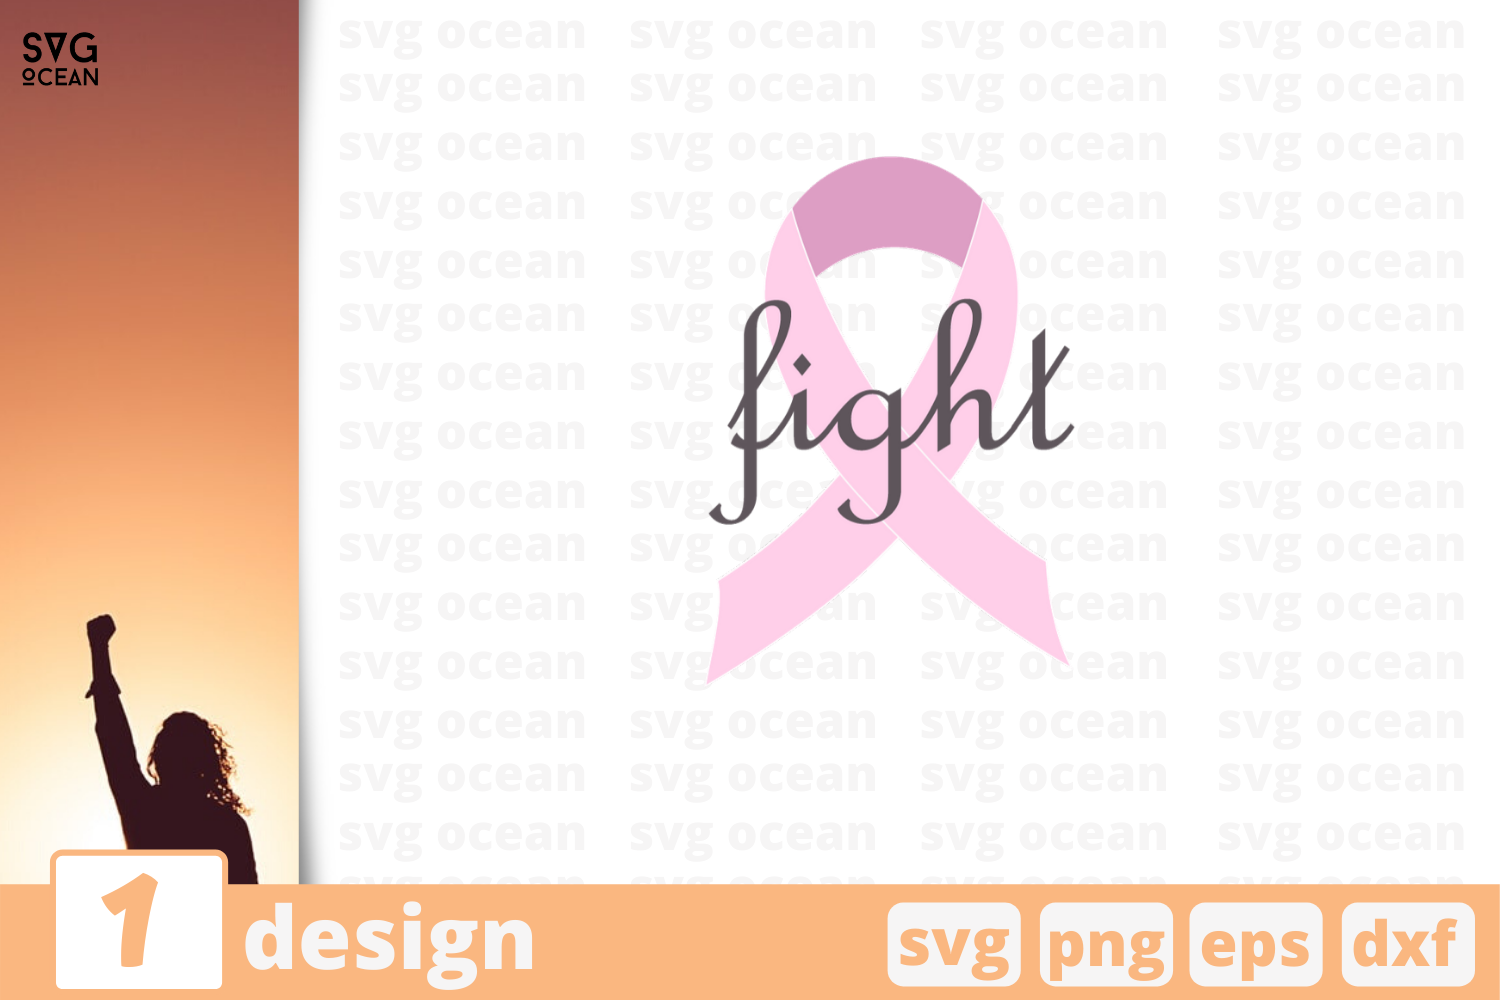 1 Fight Svg Bundle Quotes Cricut Svg By Svgocean Thehungryjpeg Com